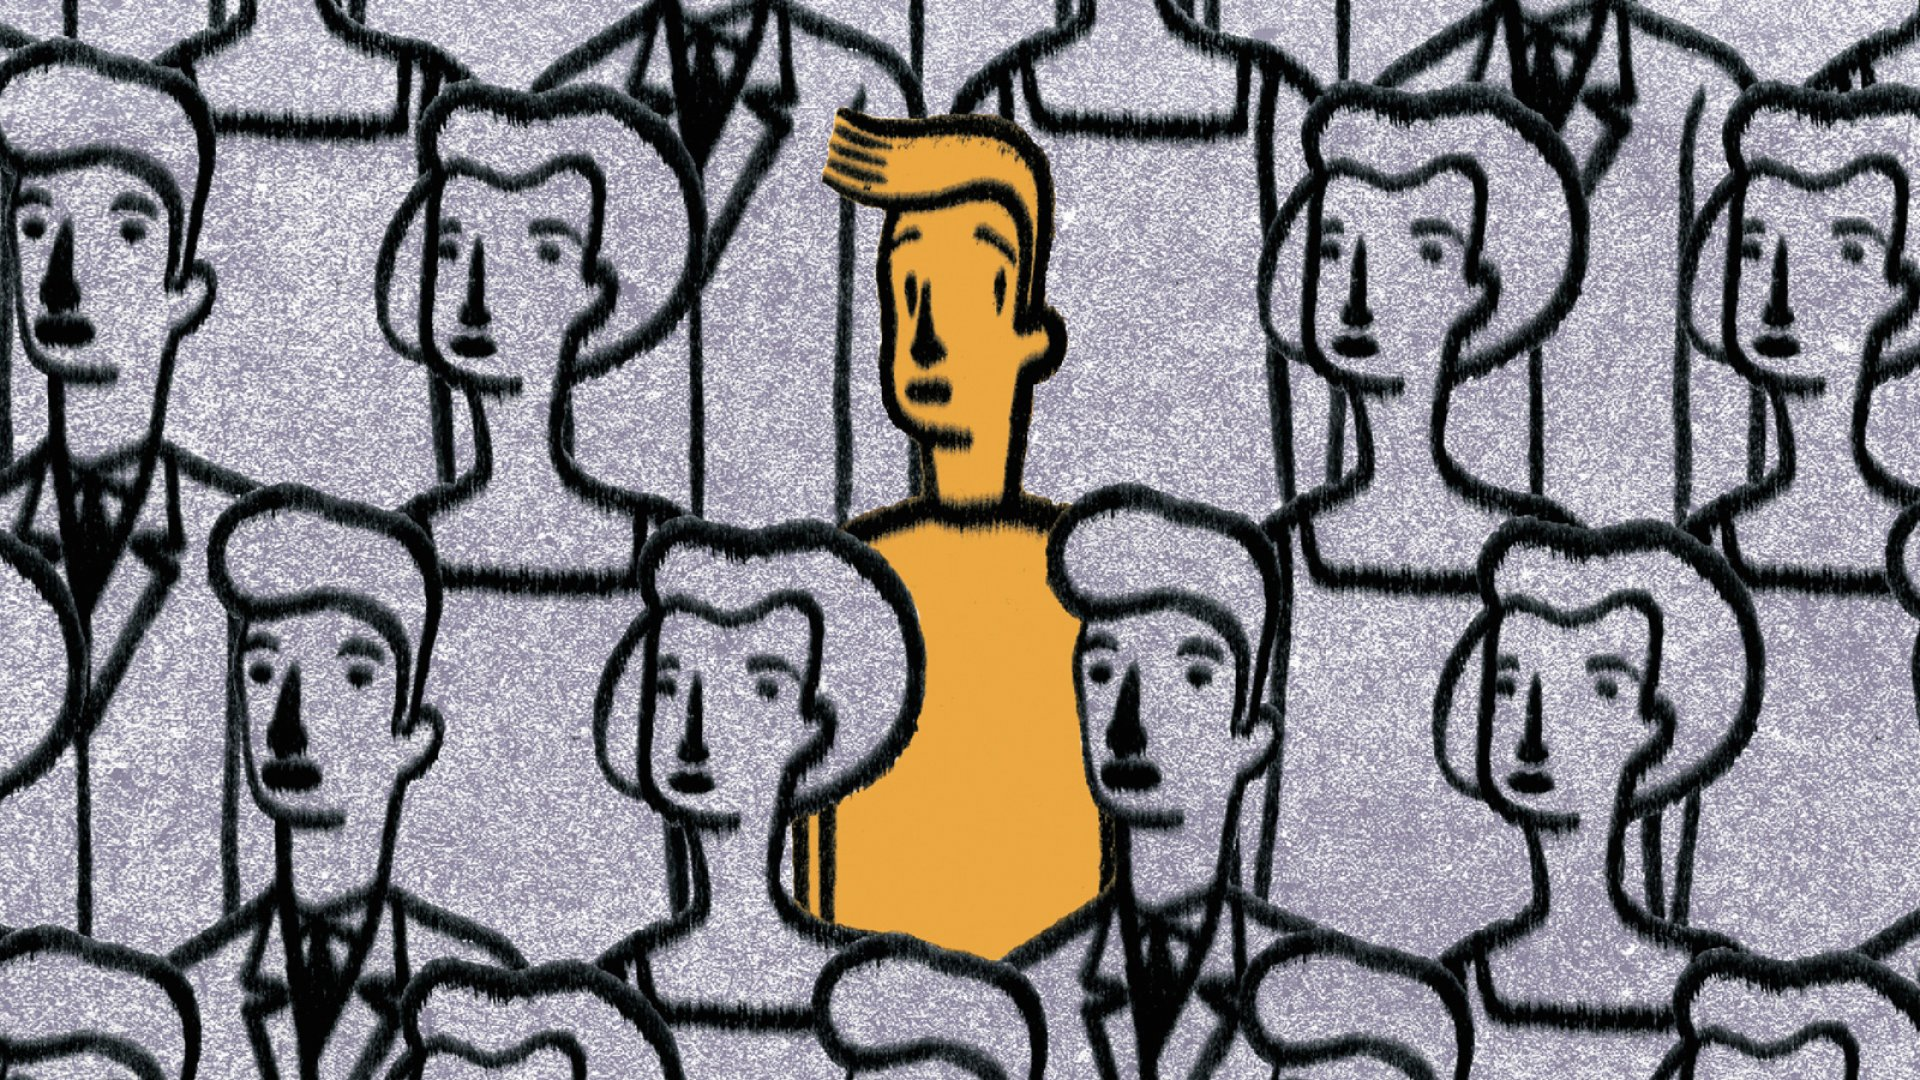 Forget About the Wisdom of the Crowd: Figure Out Who Matters Most